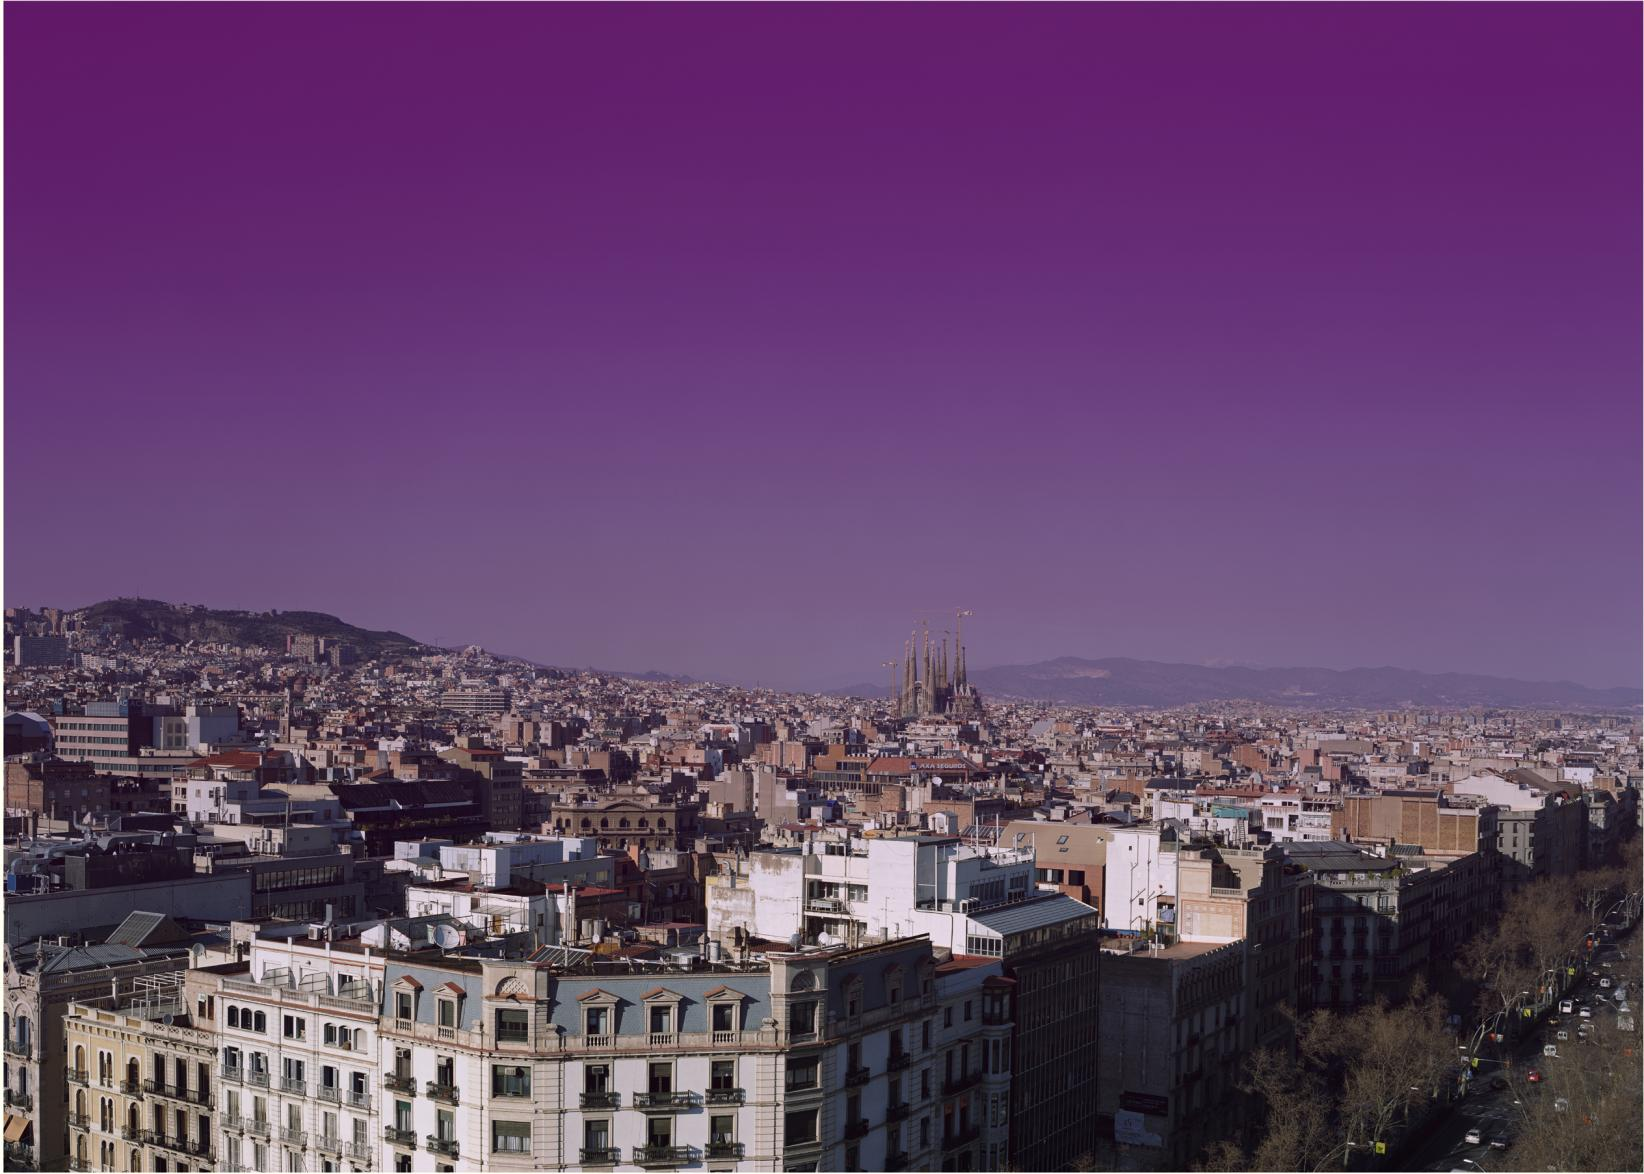 True Stories (Barcelona), 23 (2005) - Hannah Collins